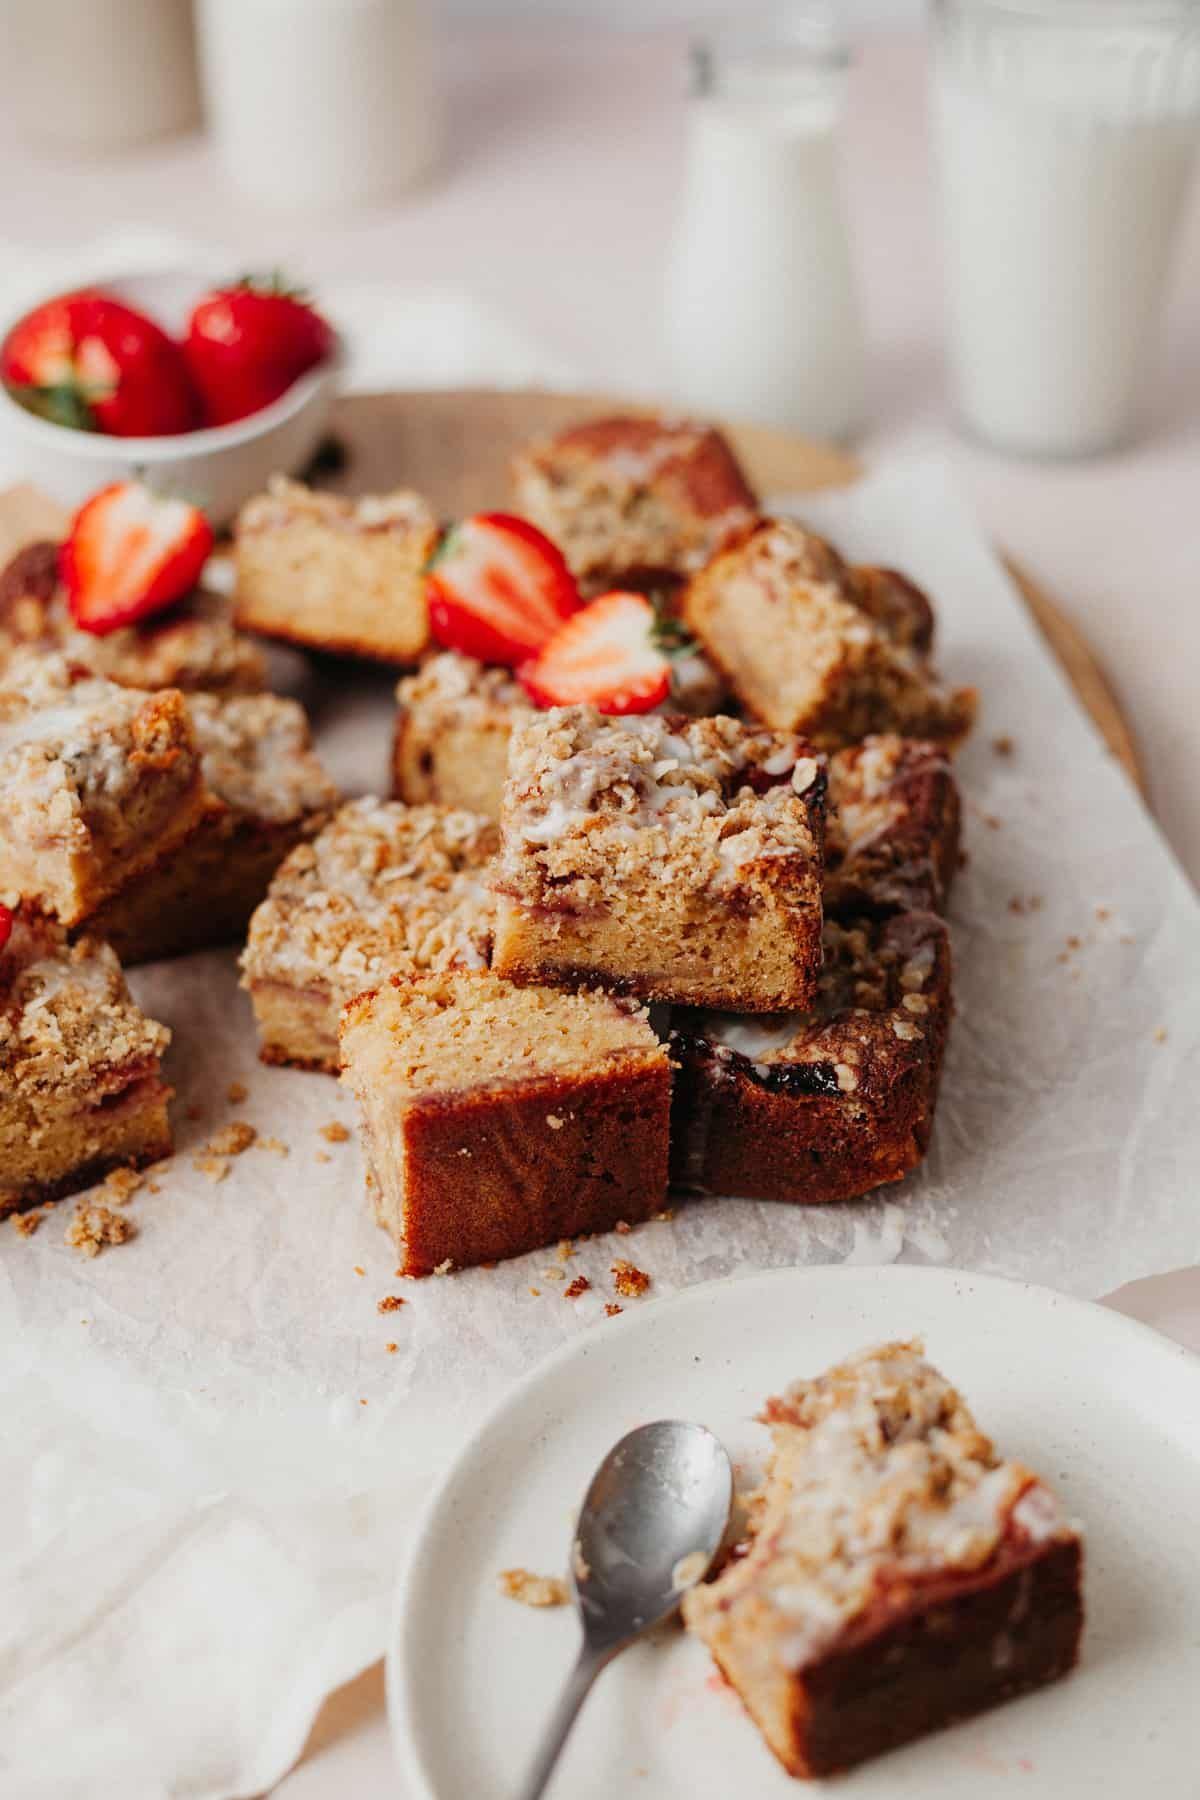 An overhead shot of squares of strawberry crumble cake. One square has a strawberry on top that has been cut in half. The slices are on top of parchment paper and there is a small plate with one slice on it